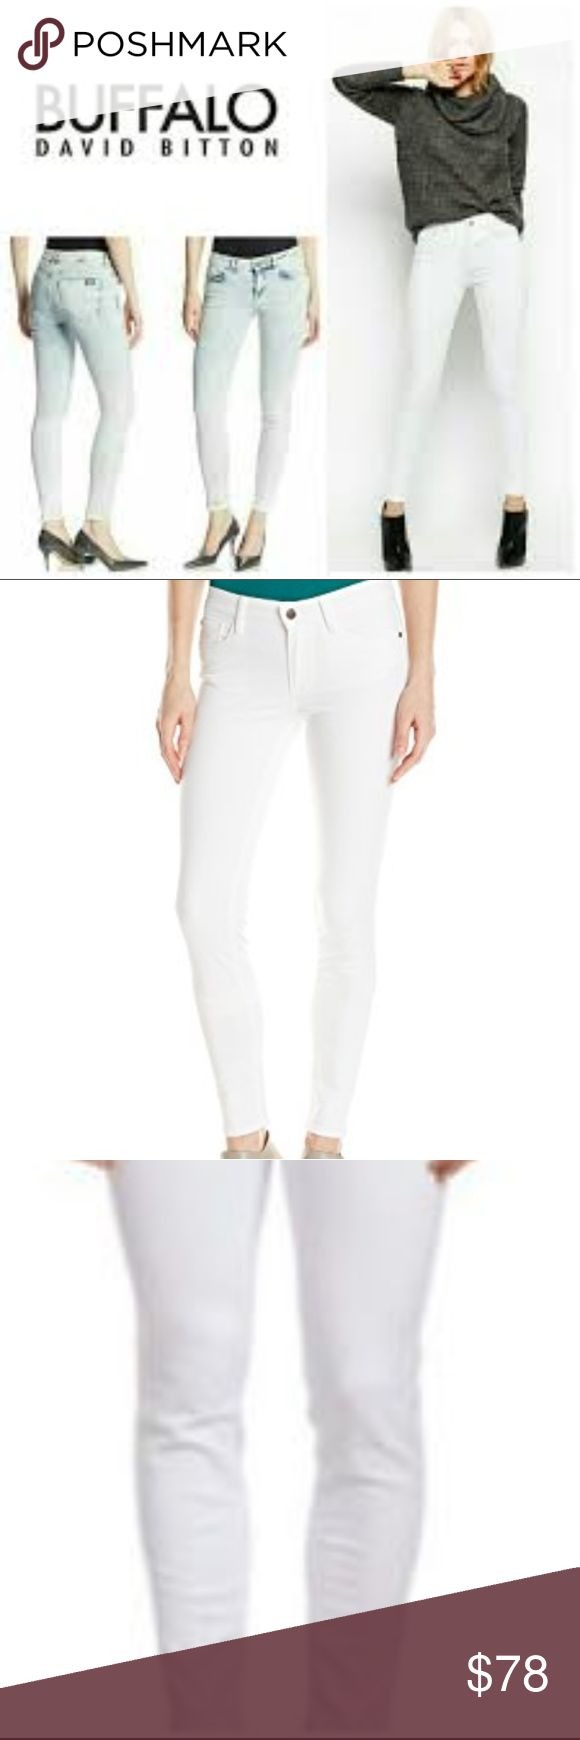 SKINNY Stretch ANKLE GRAZER BUFFALO Bitton NEW SKINNY Stretch Mid Rise ANKLE GRAZER BUFFALO Bitton NEW without Tags ~ Size 16 Ladies or Waist 36. AMAZINGLY SOFT PAIR OF JEANS! Perfect for casual or dressy wear!! I ship daily. 98% cotton 2% spandex Buffalo David Bitton Jeans Skinny